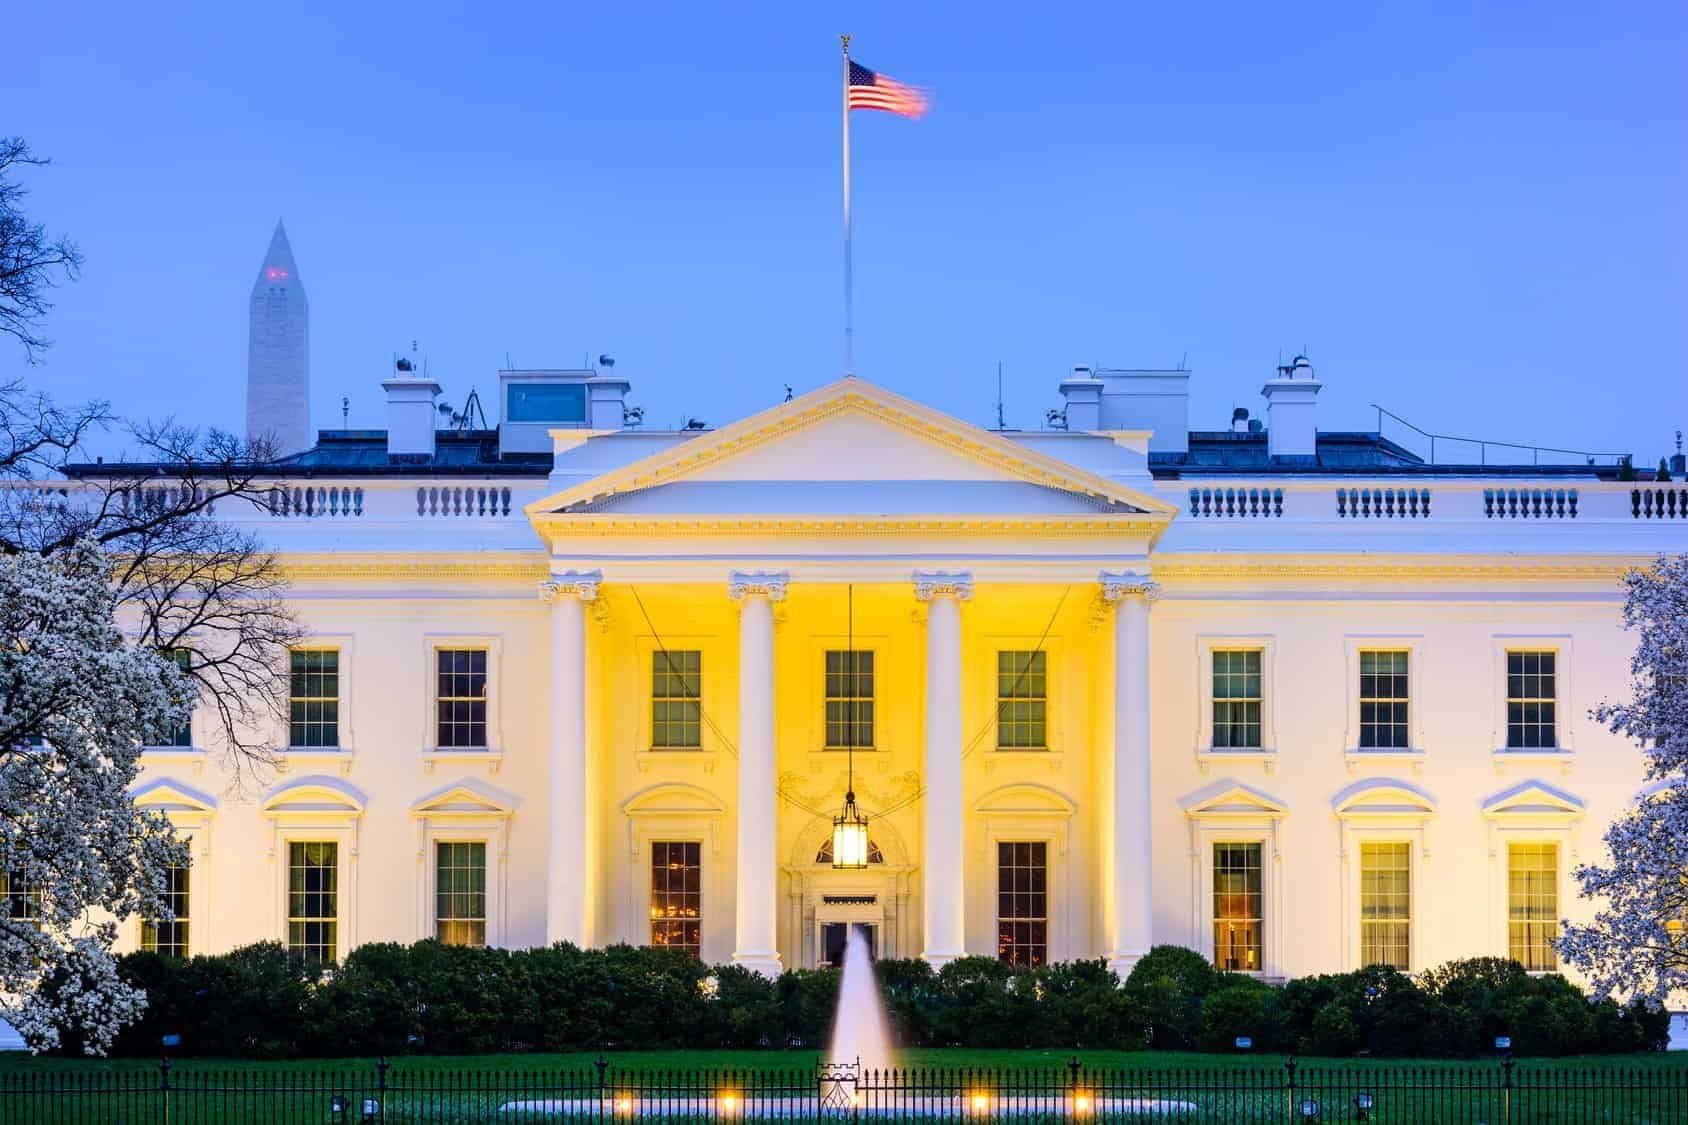 Recovery Unplugged Treatment Center Recovery Unplugged Attends White House Substance Abuse Forum